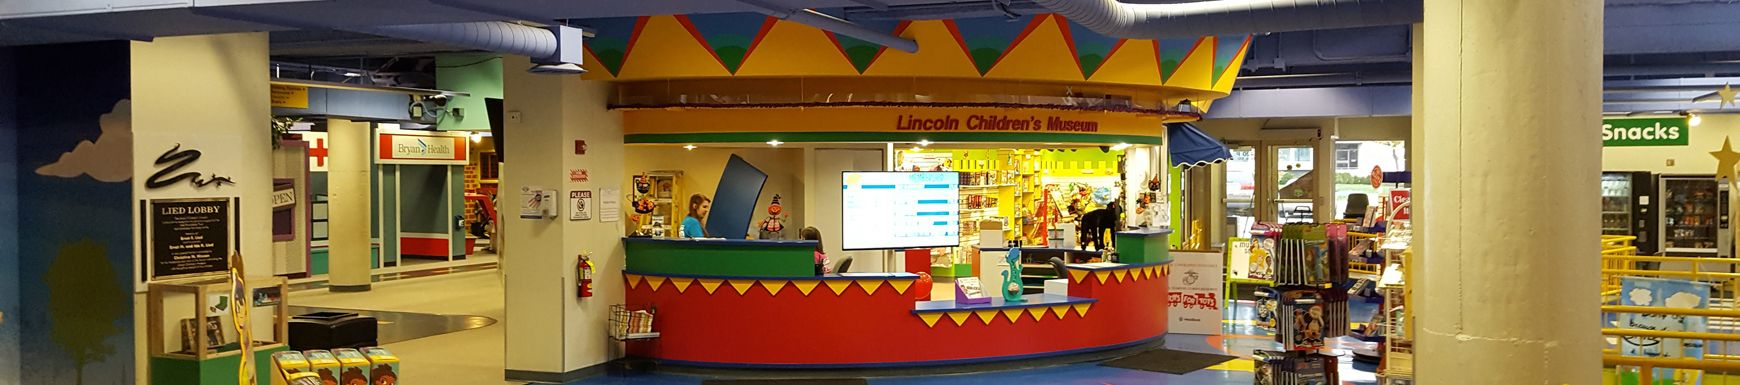 Enter the lobby of Lincoln Children's Museum